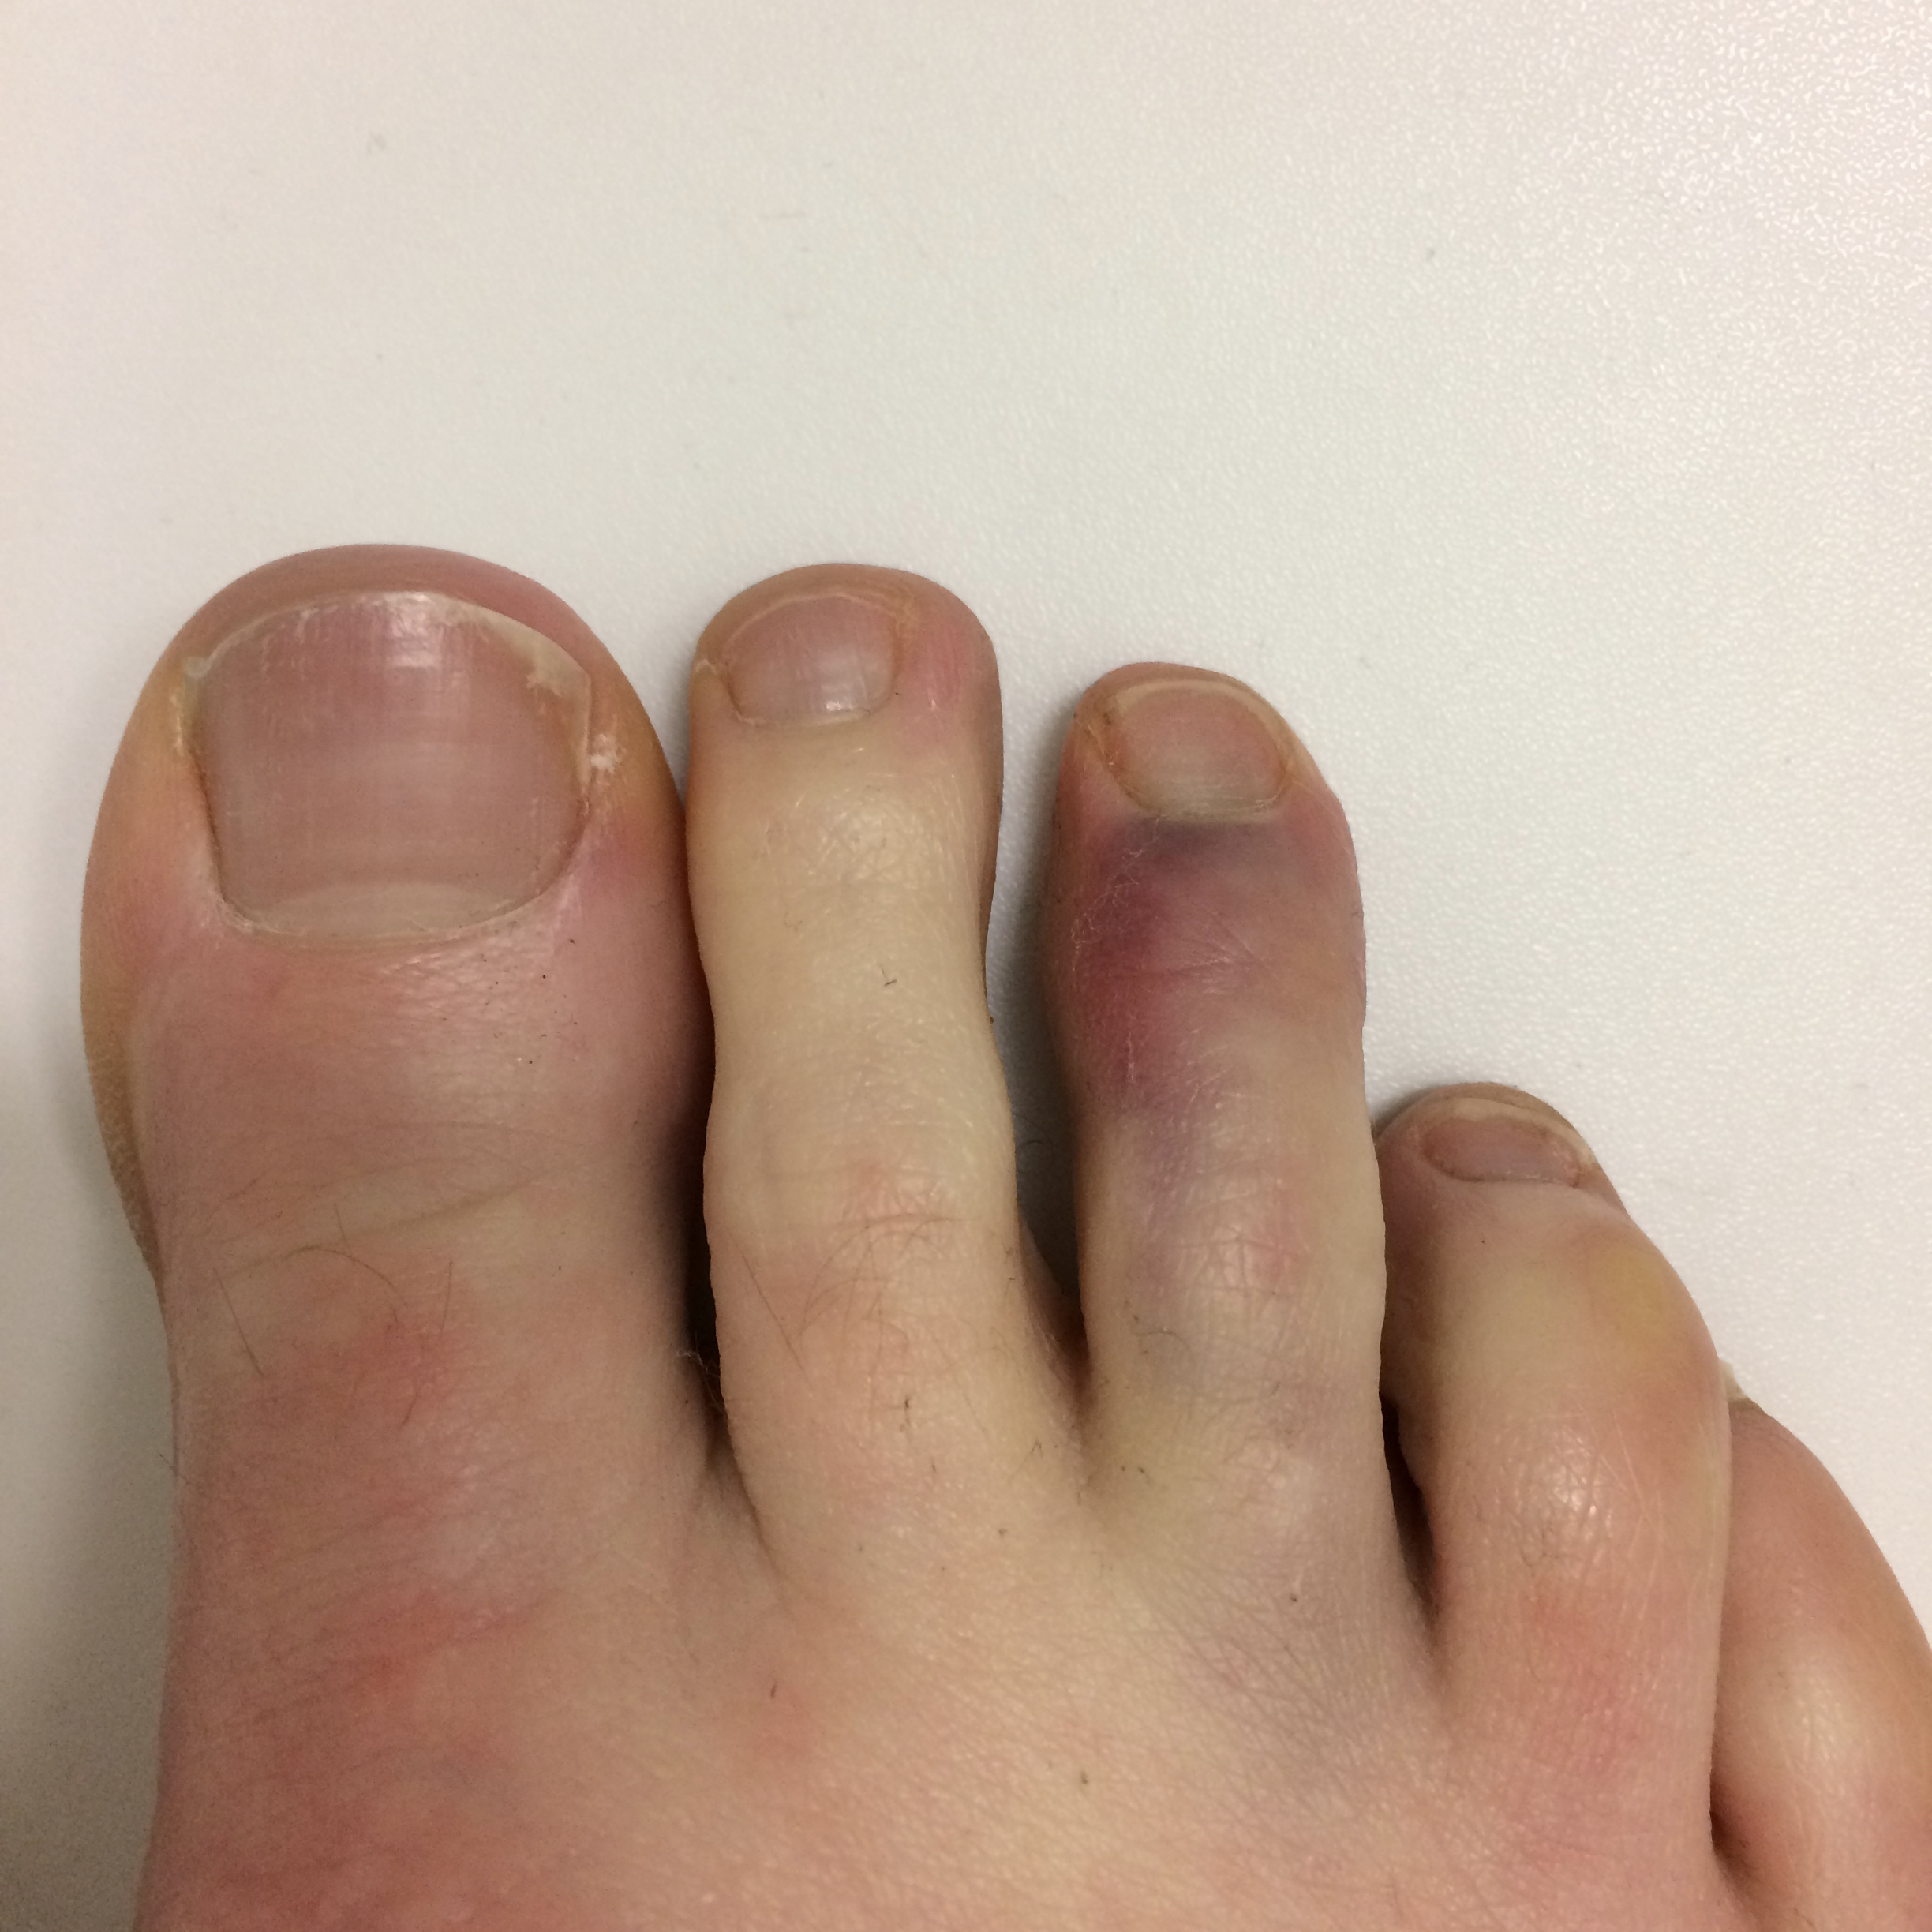 how to tell if toe is broken